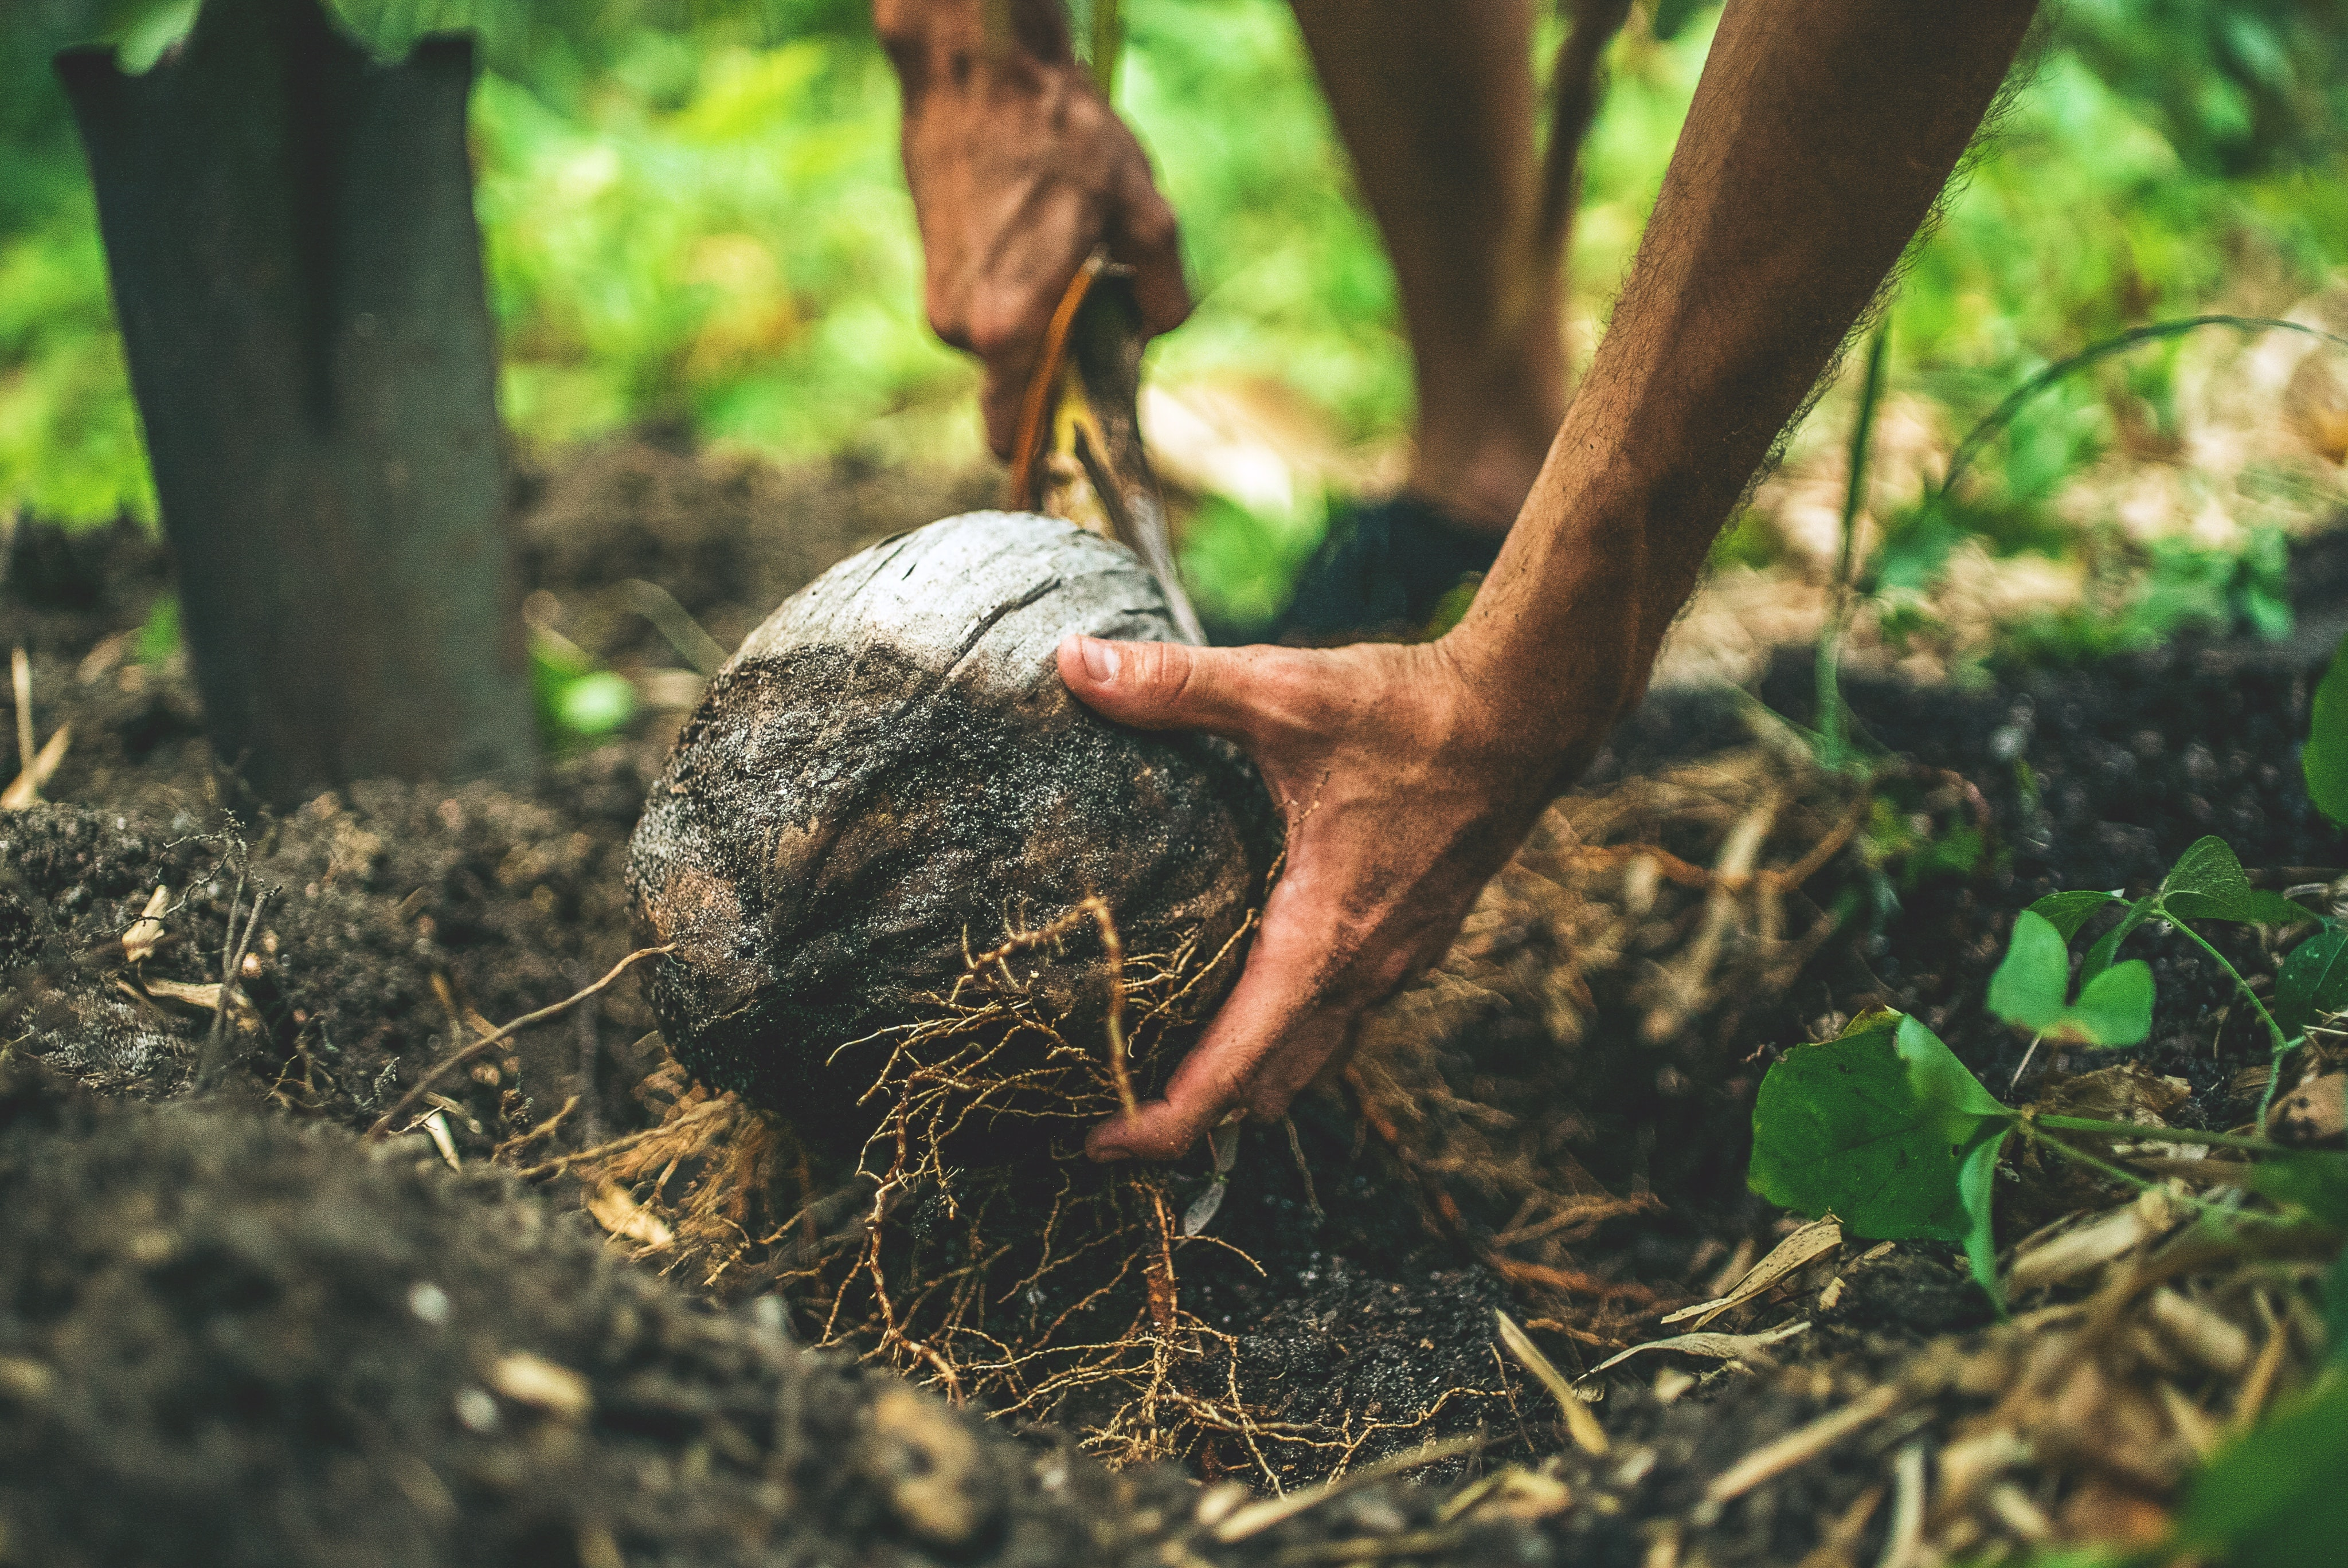 Field worker digs up a coconut from the forest floor